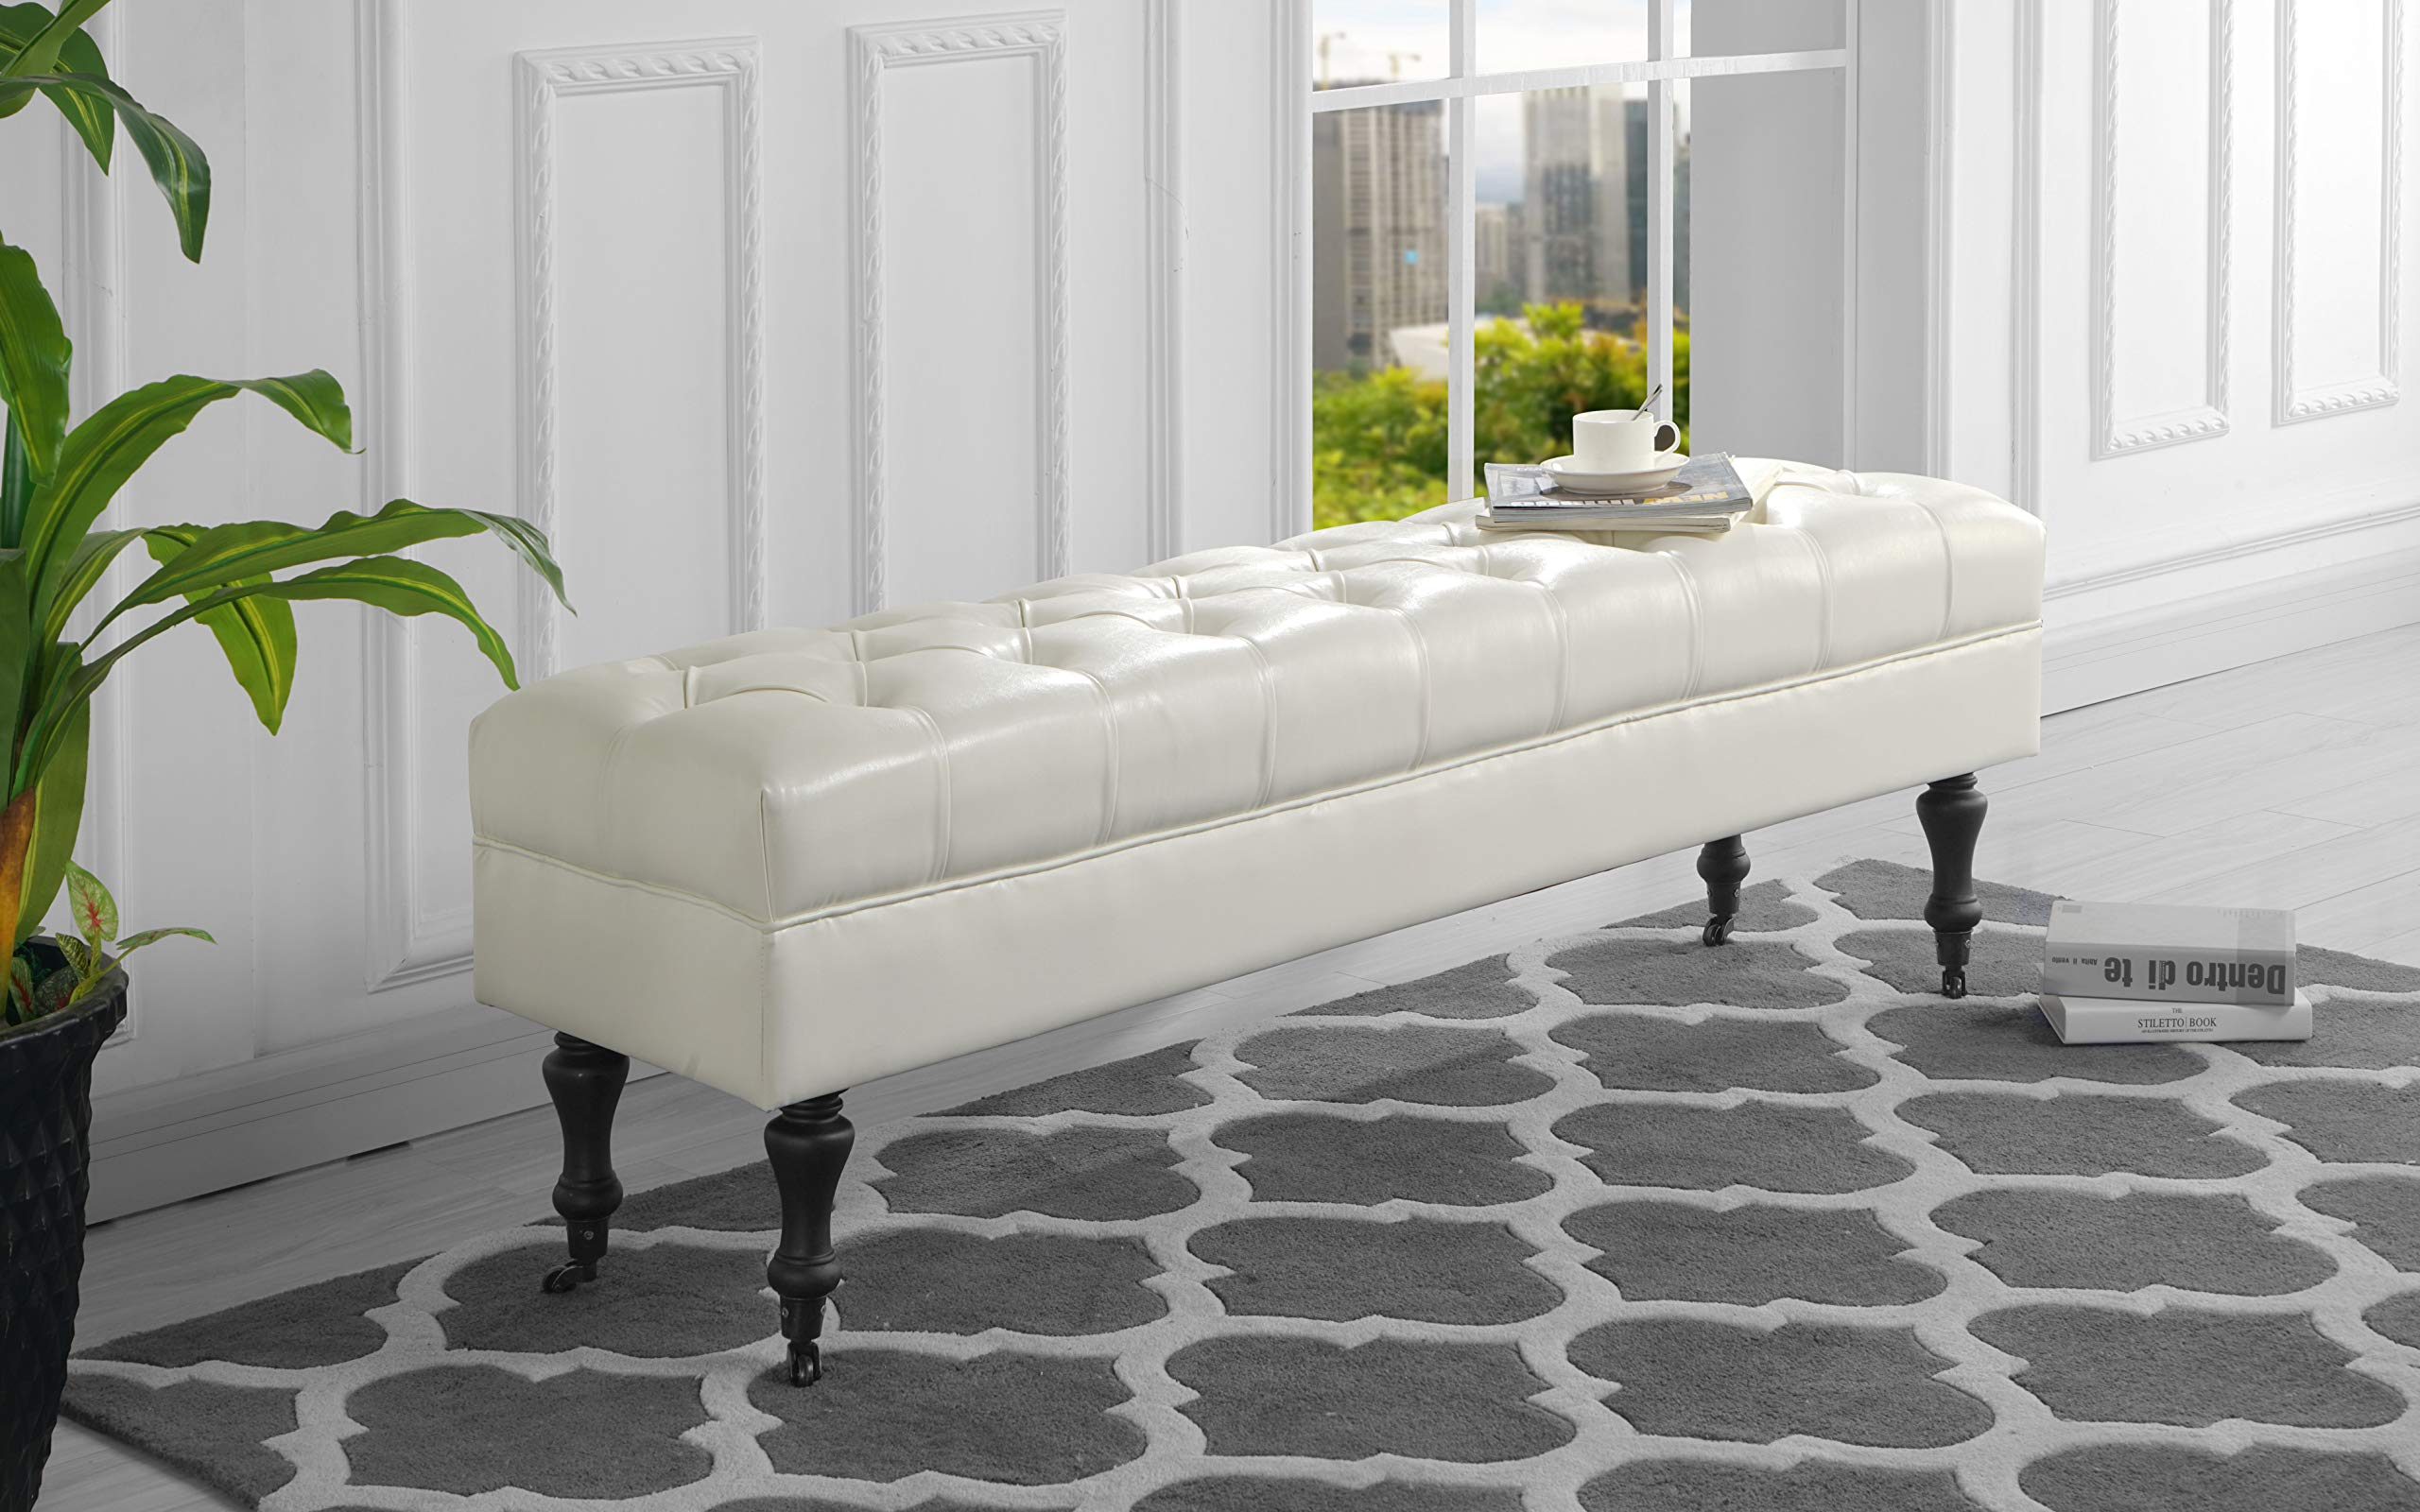 Housel Living HSL09 Bench, White by Housel Living